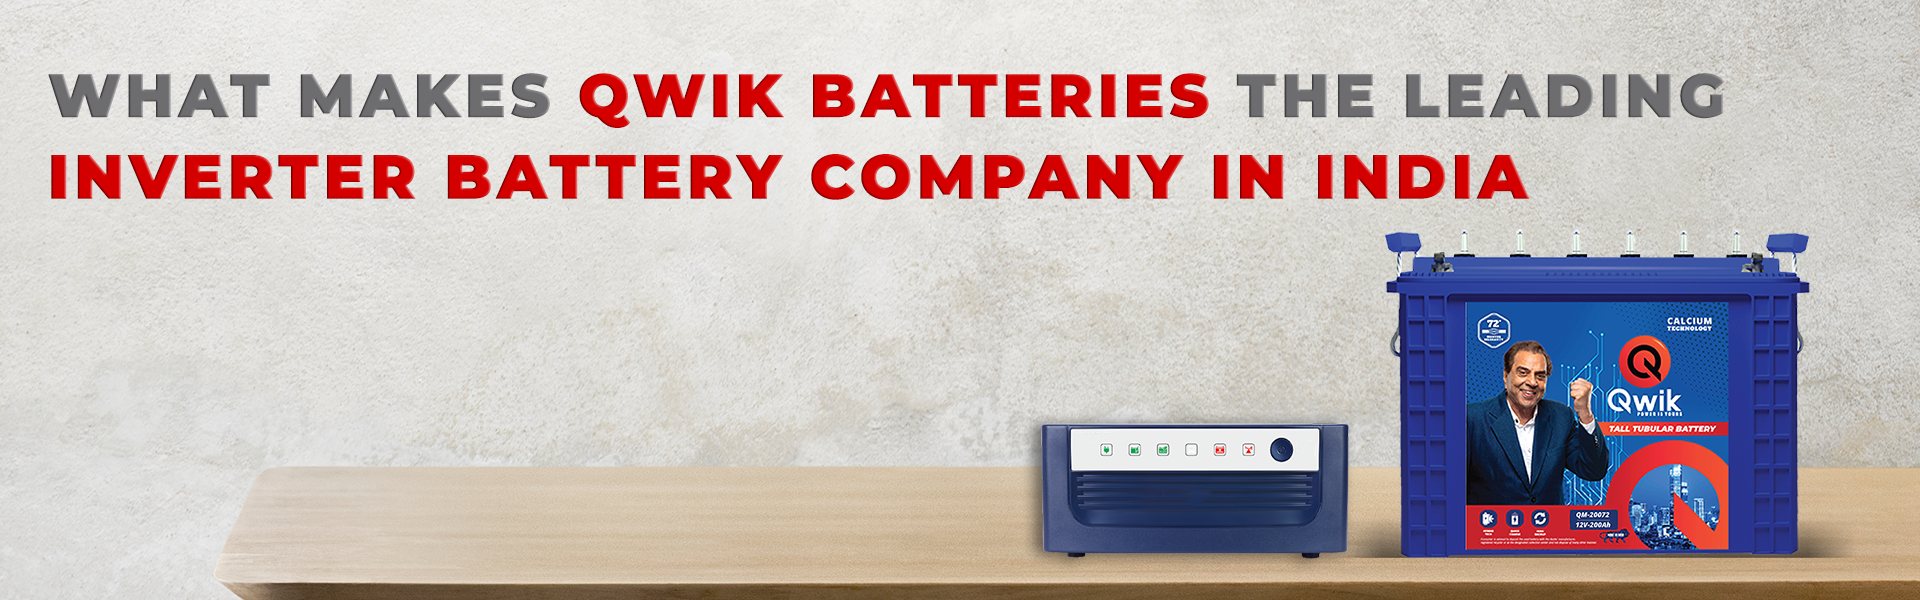 Inverter Battery Company in India